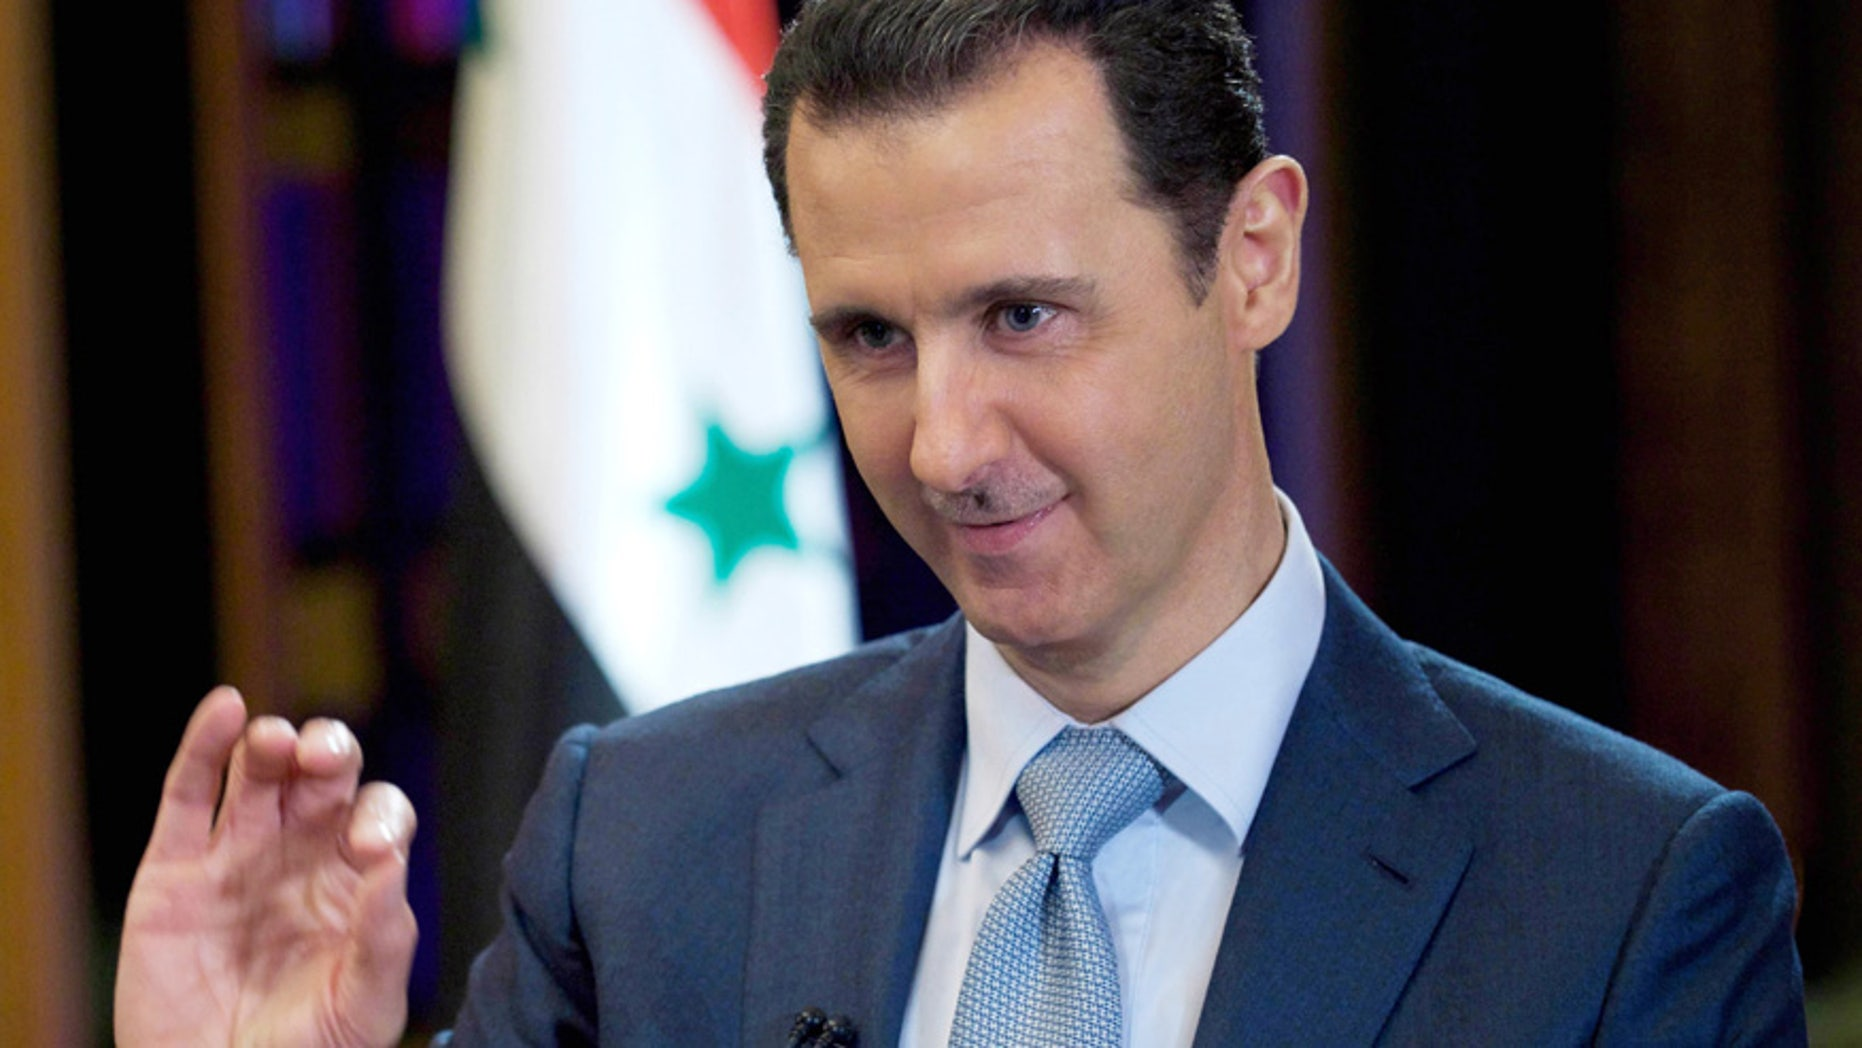 In this Feb. 10, 2015, file photo released by the Syrian official news agency SANA, Syrian President Bashar Assad gives an interview with the BBC in Damascus, Syria